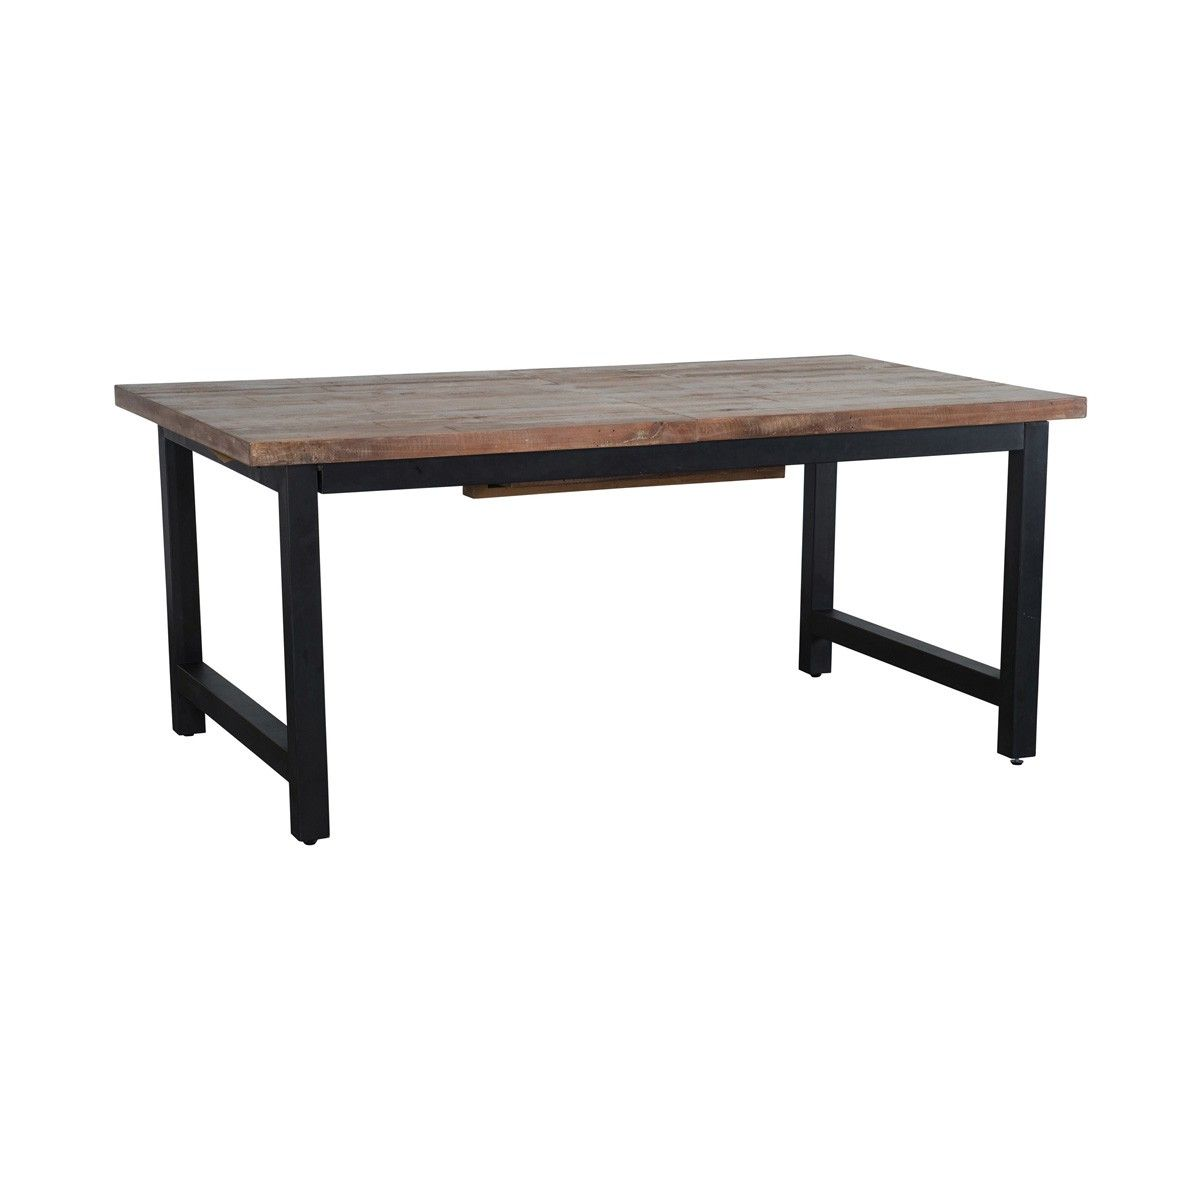 Dune ext dining table 71 23 ext may spring clearance sale